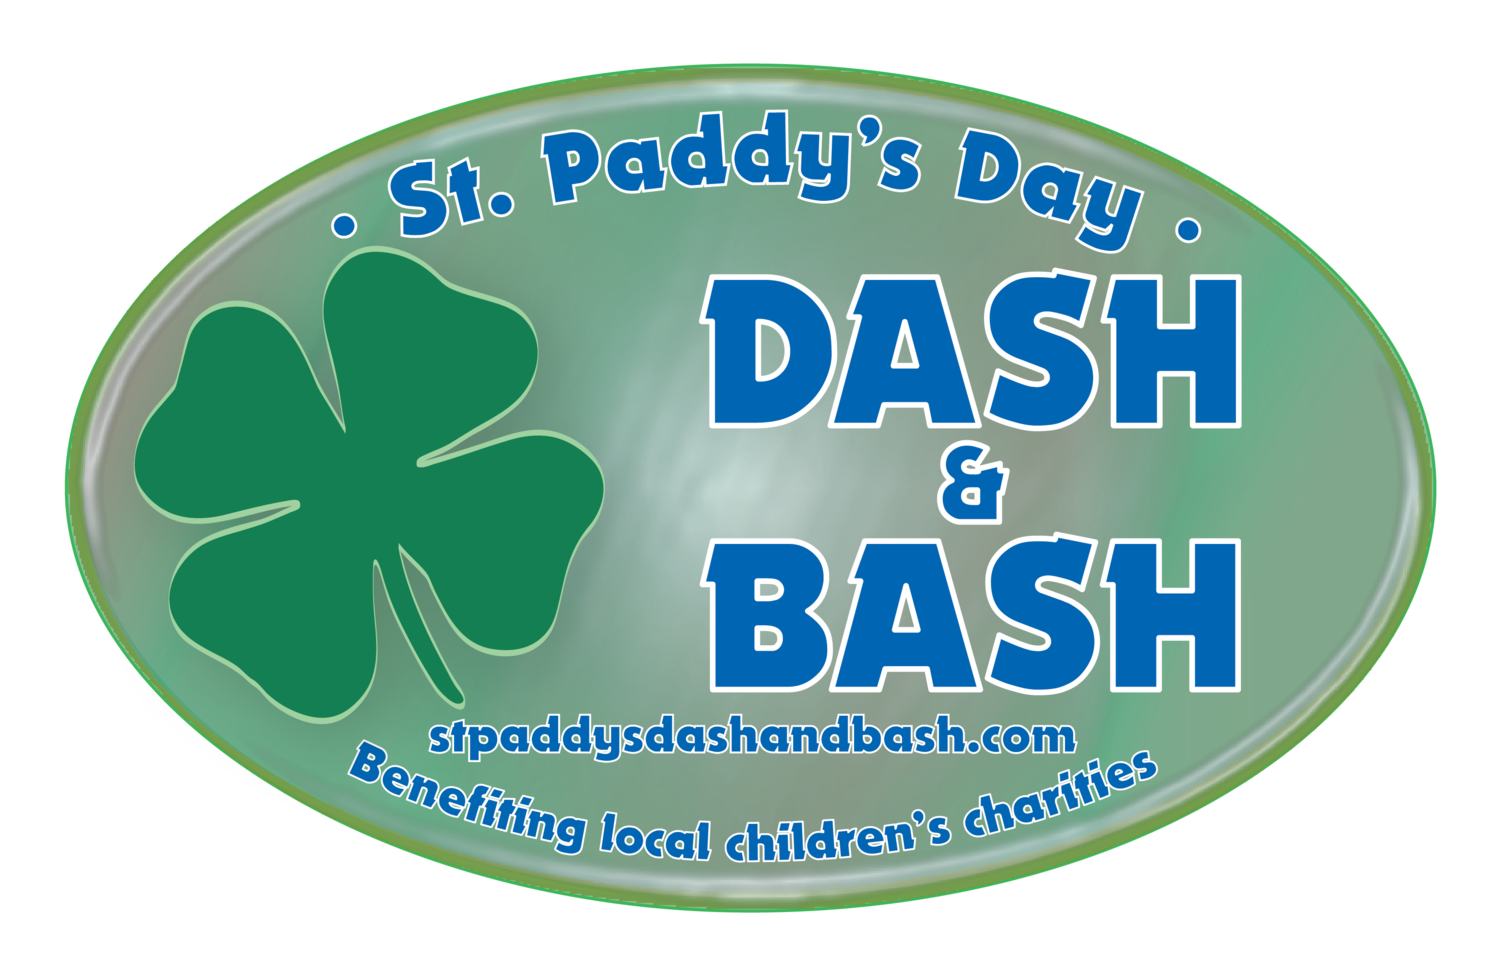 St. Paddy's Day Dash & Bash